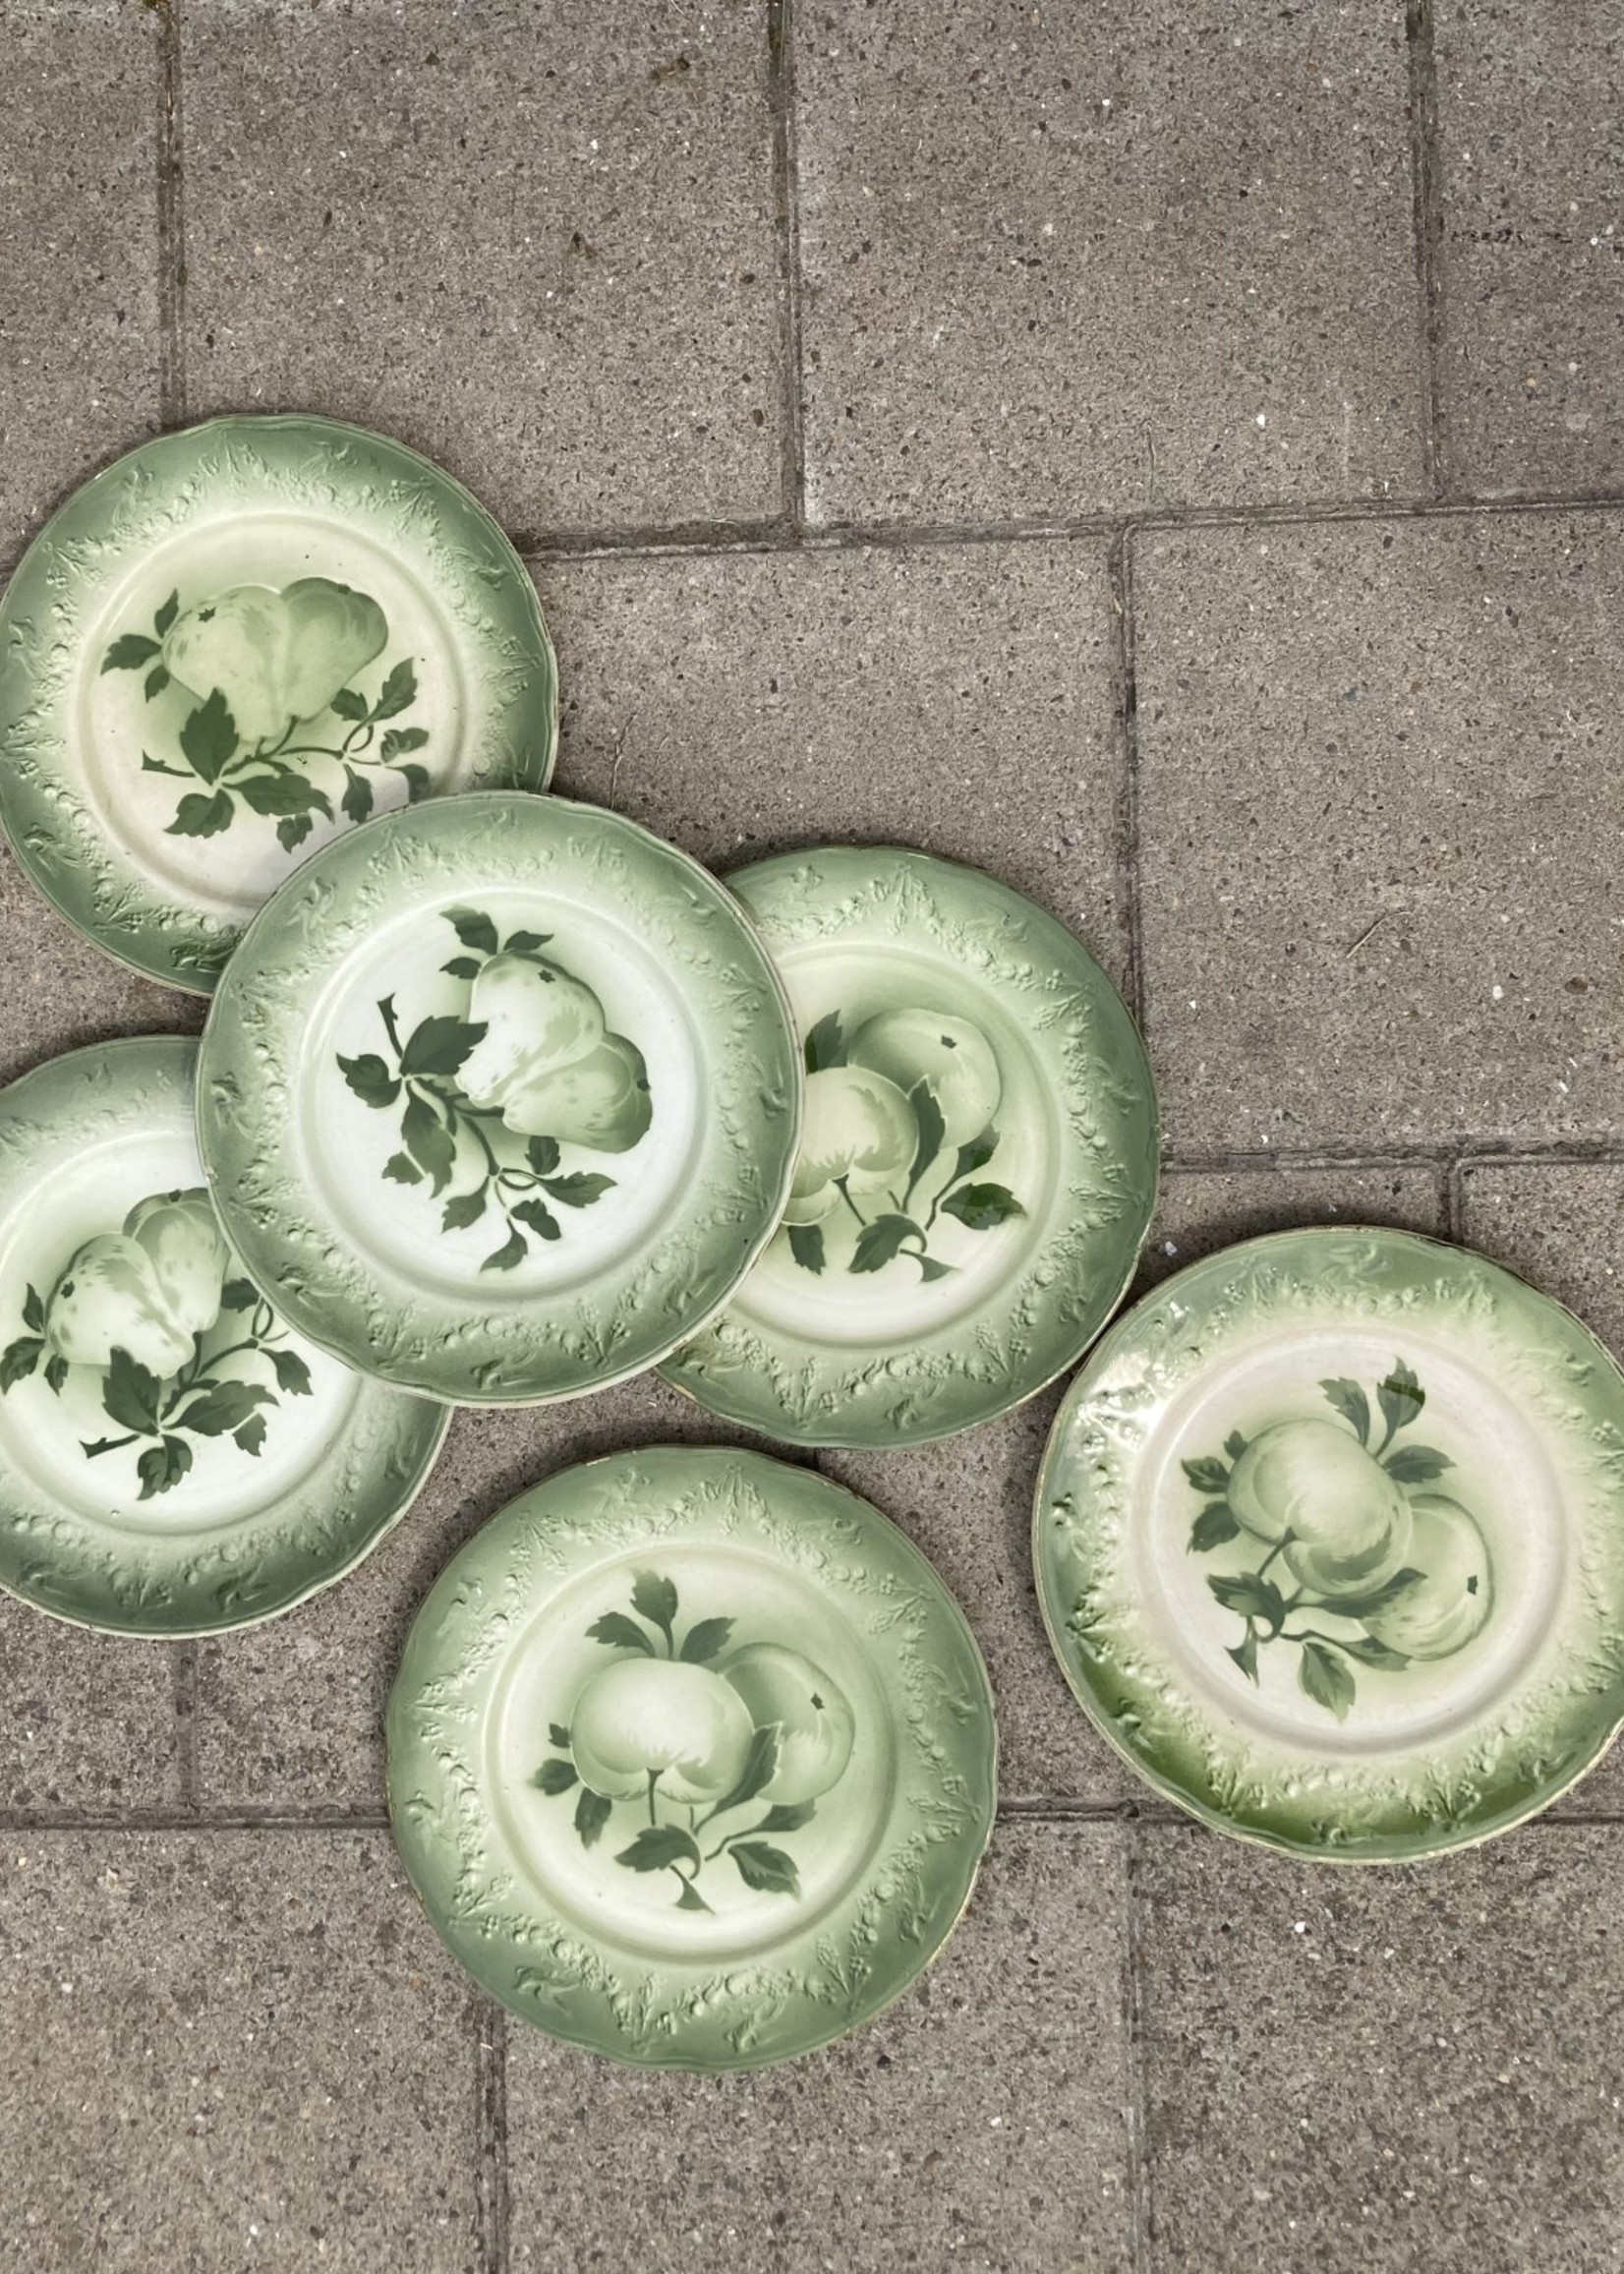 Small plates green decor by Luneville